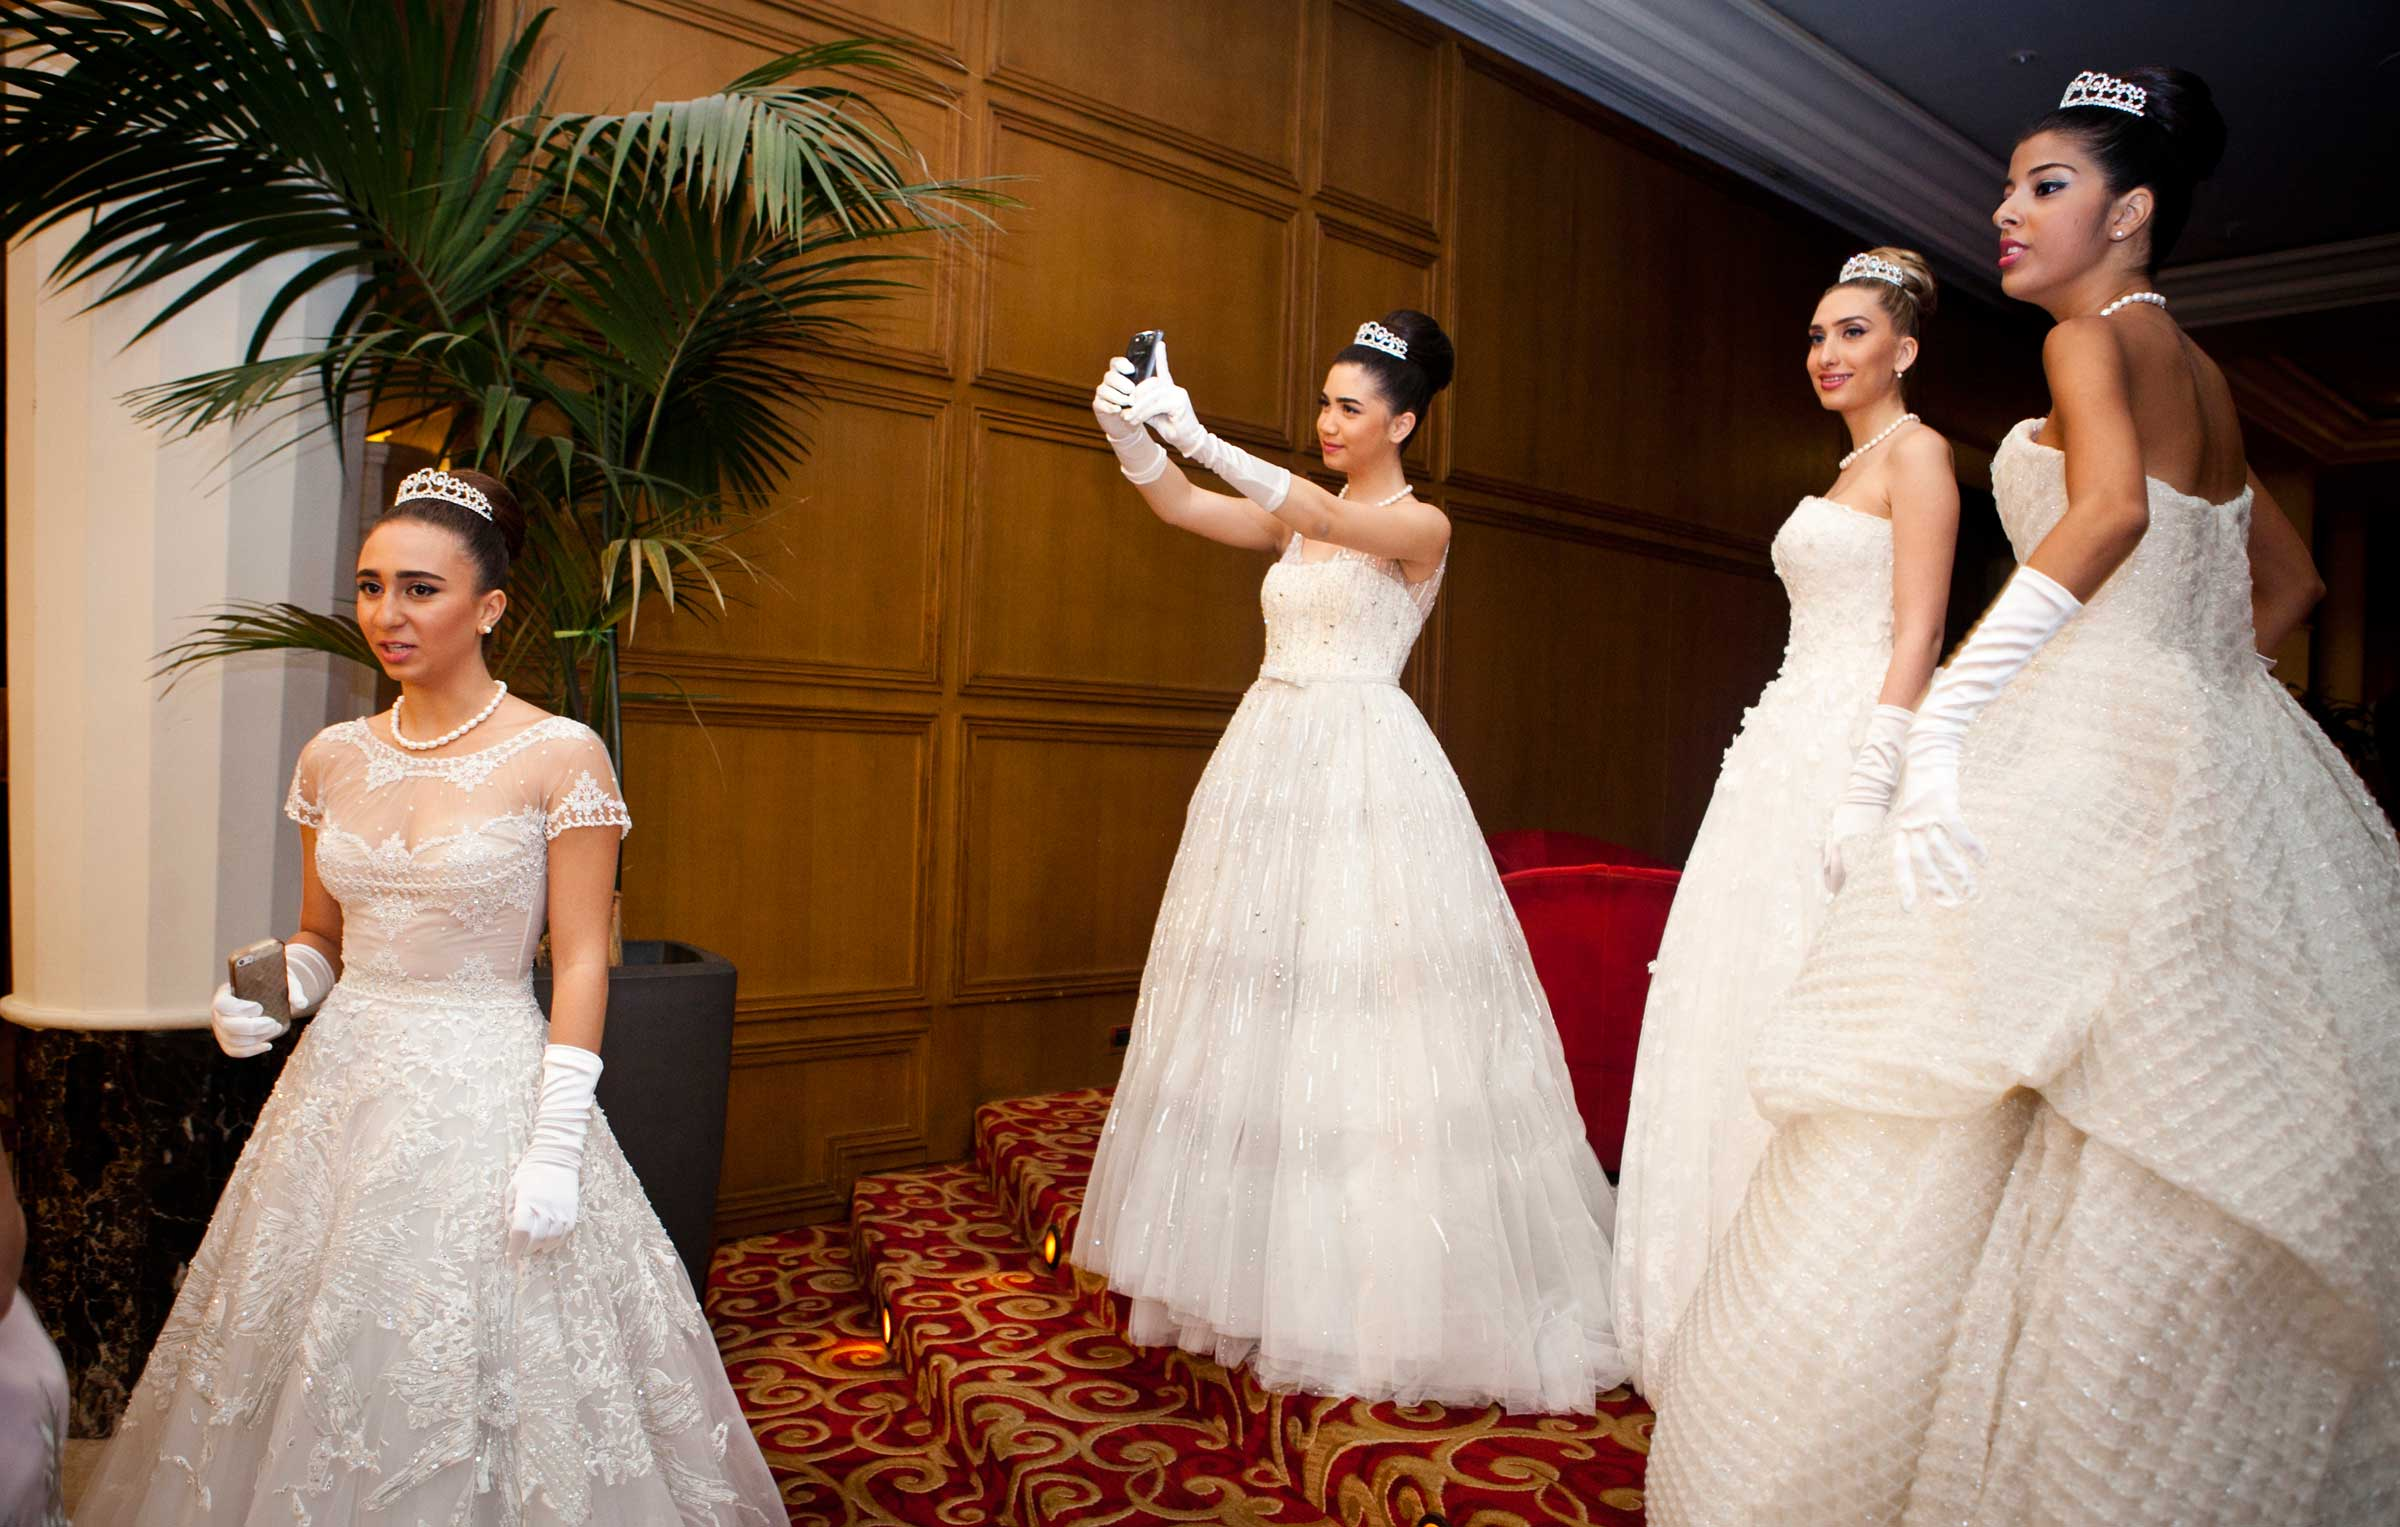 Taline Mansour, (center) poses for a self portait on her mobile phone, while amongst Debutante Ball participants, before the Ball at Casino du Liban where the Ball is held.